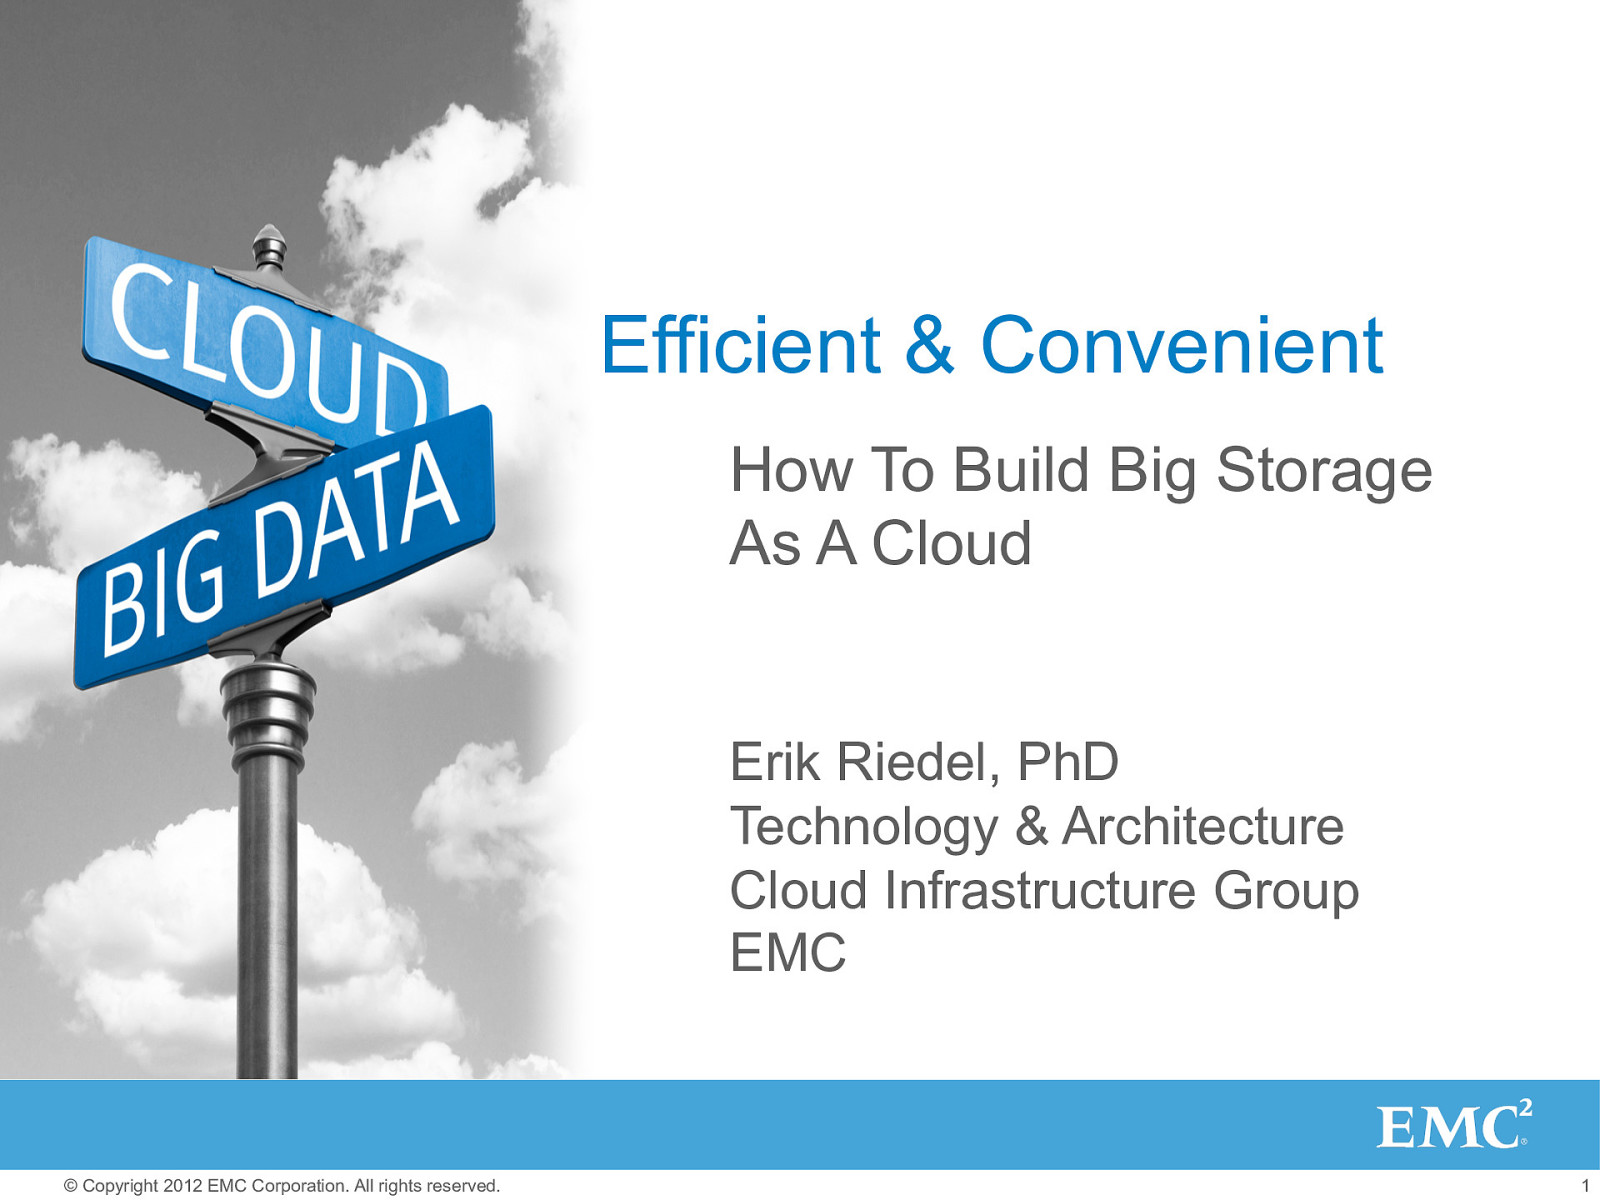 Efficient & Convenient - How To Build Big Storage As A Cloud